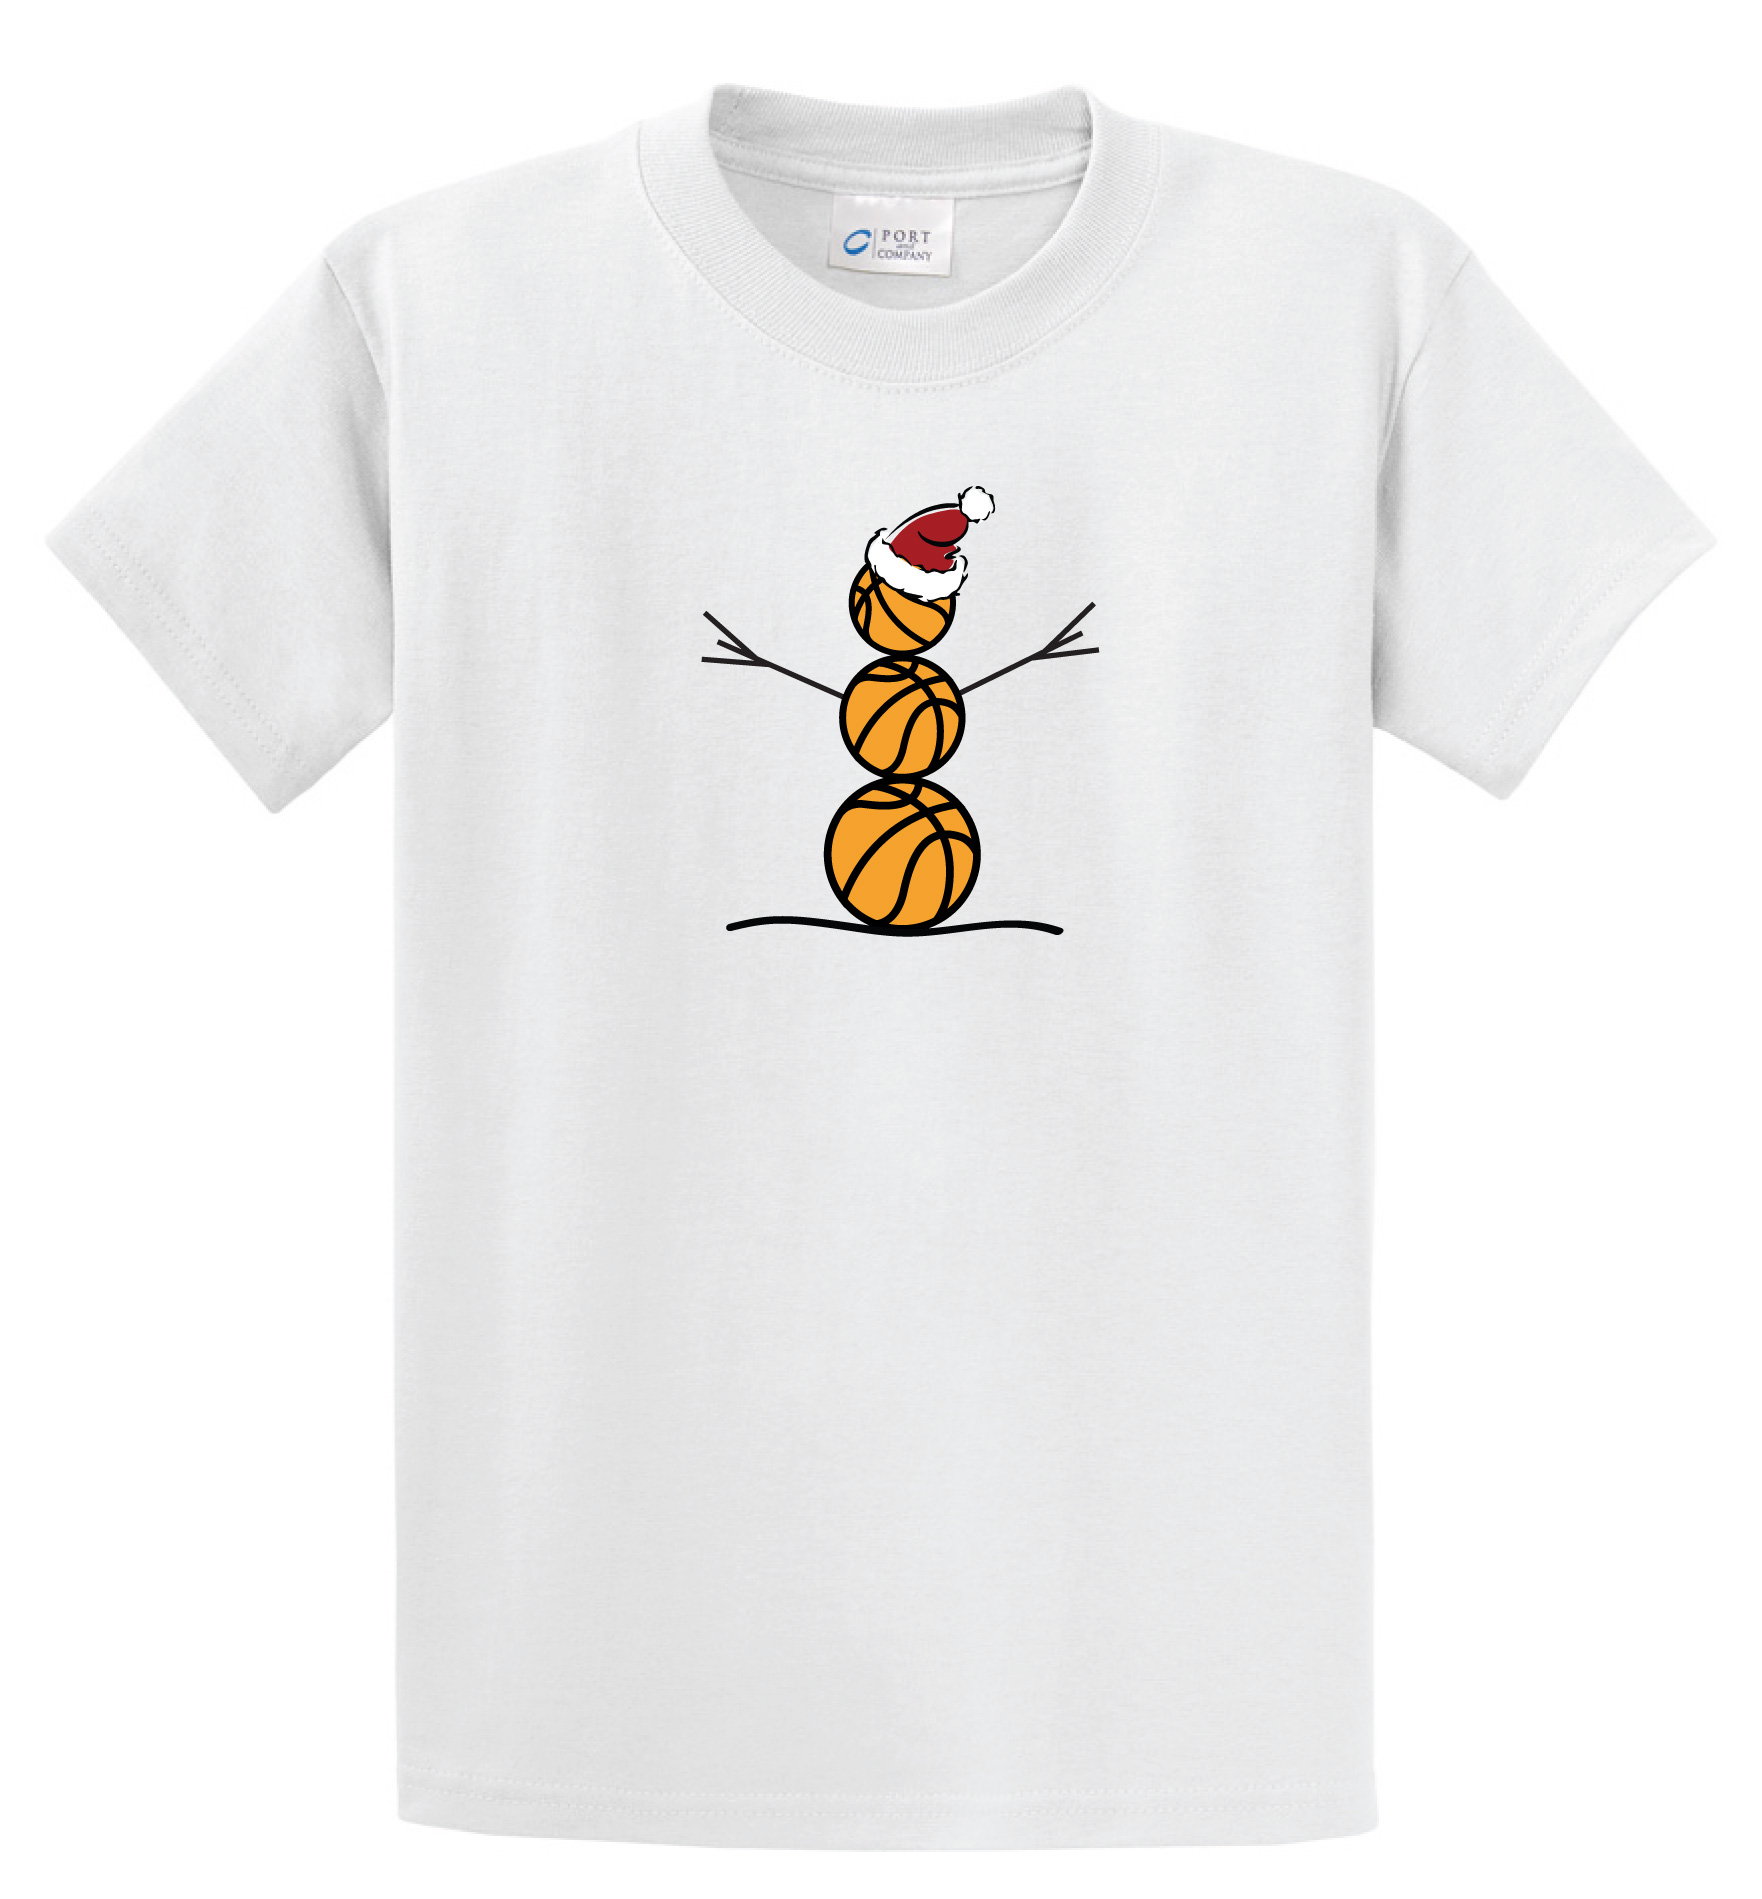 Basketball Snowman Tshirt in white by Code Four Athletics